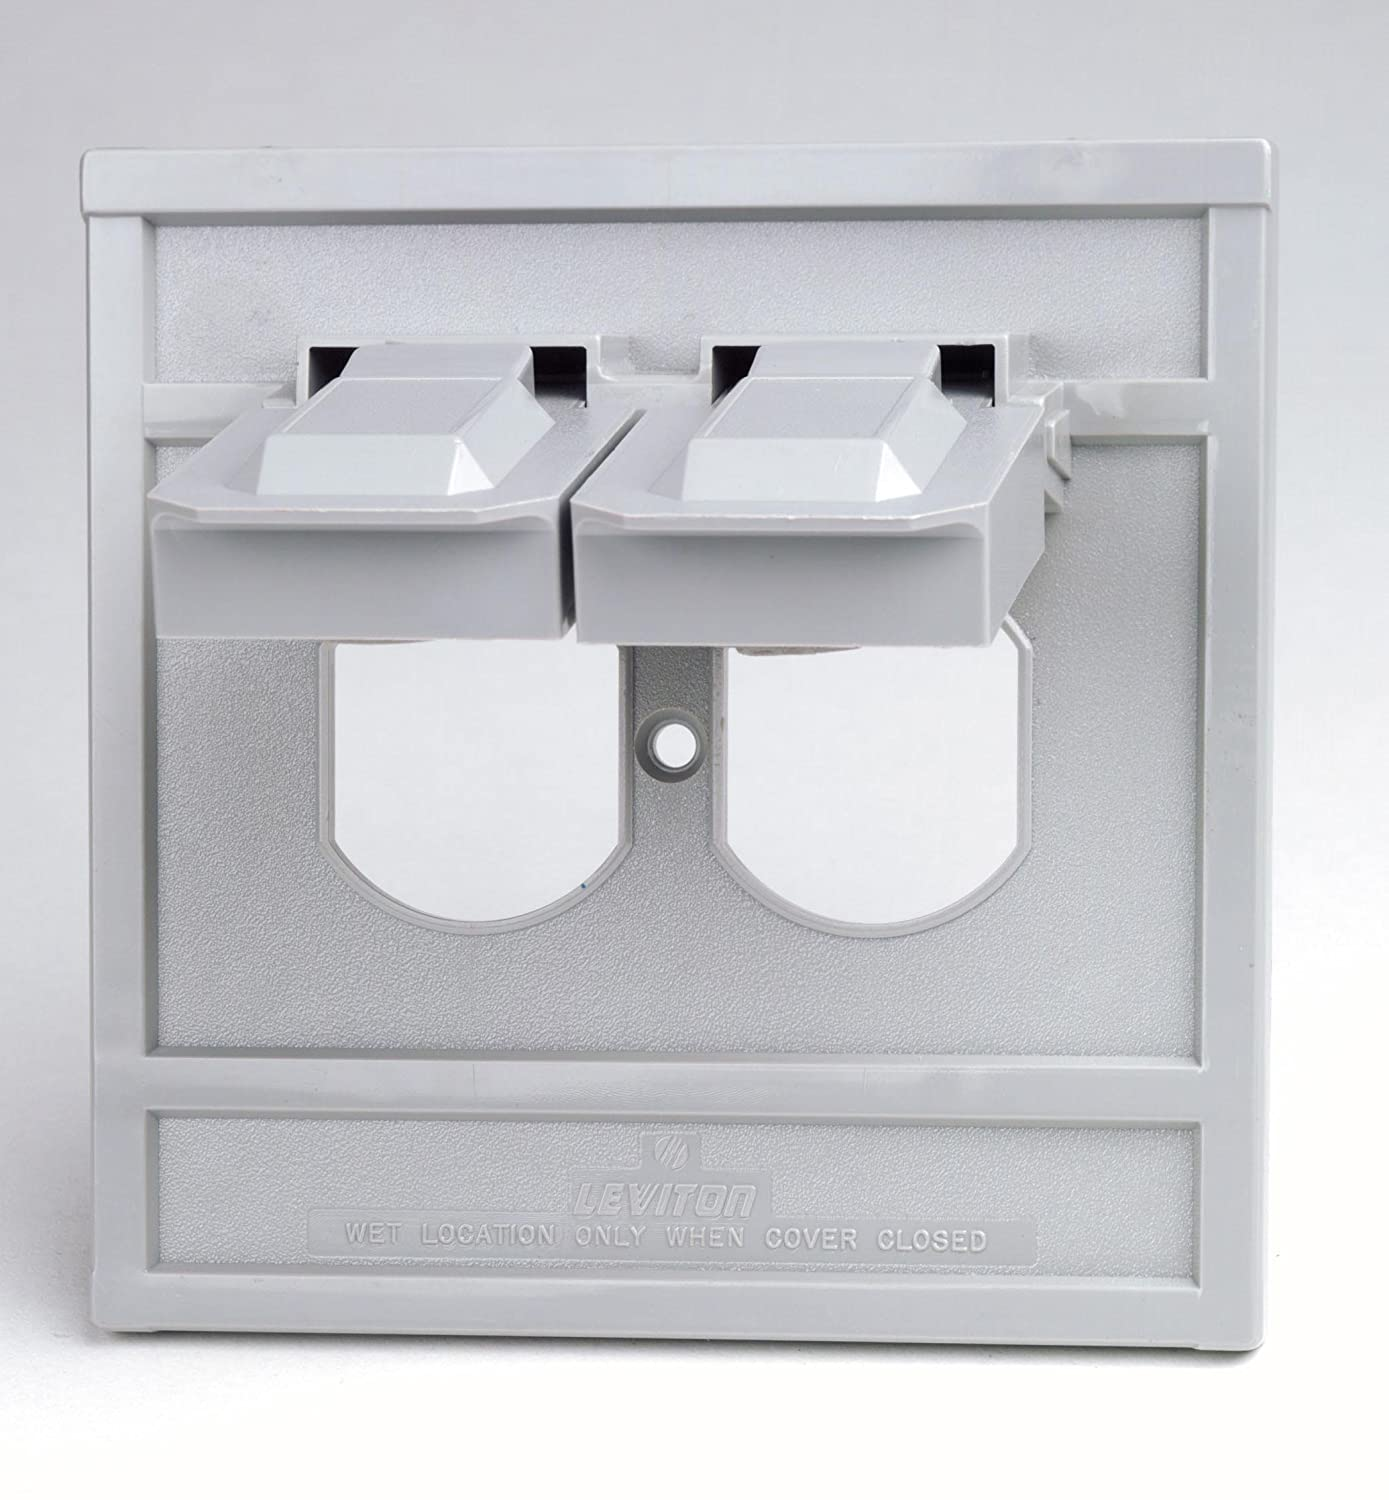 Leviton Gy 1 Gang Duplex Device Wallplate Cover